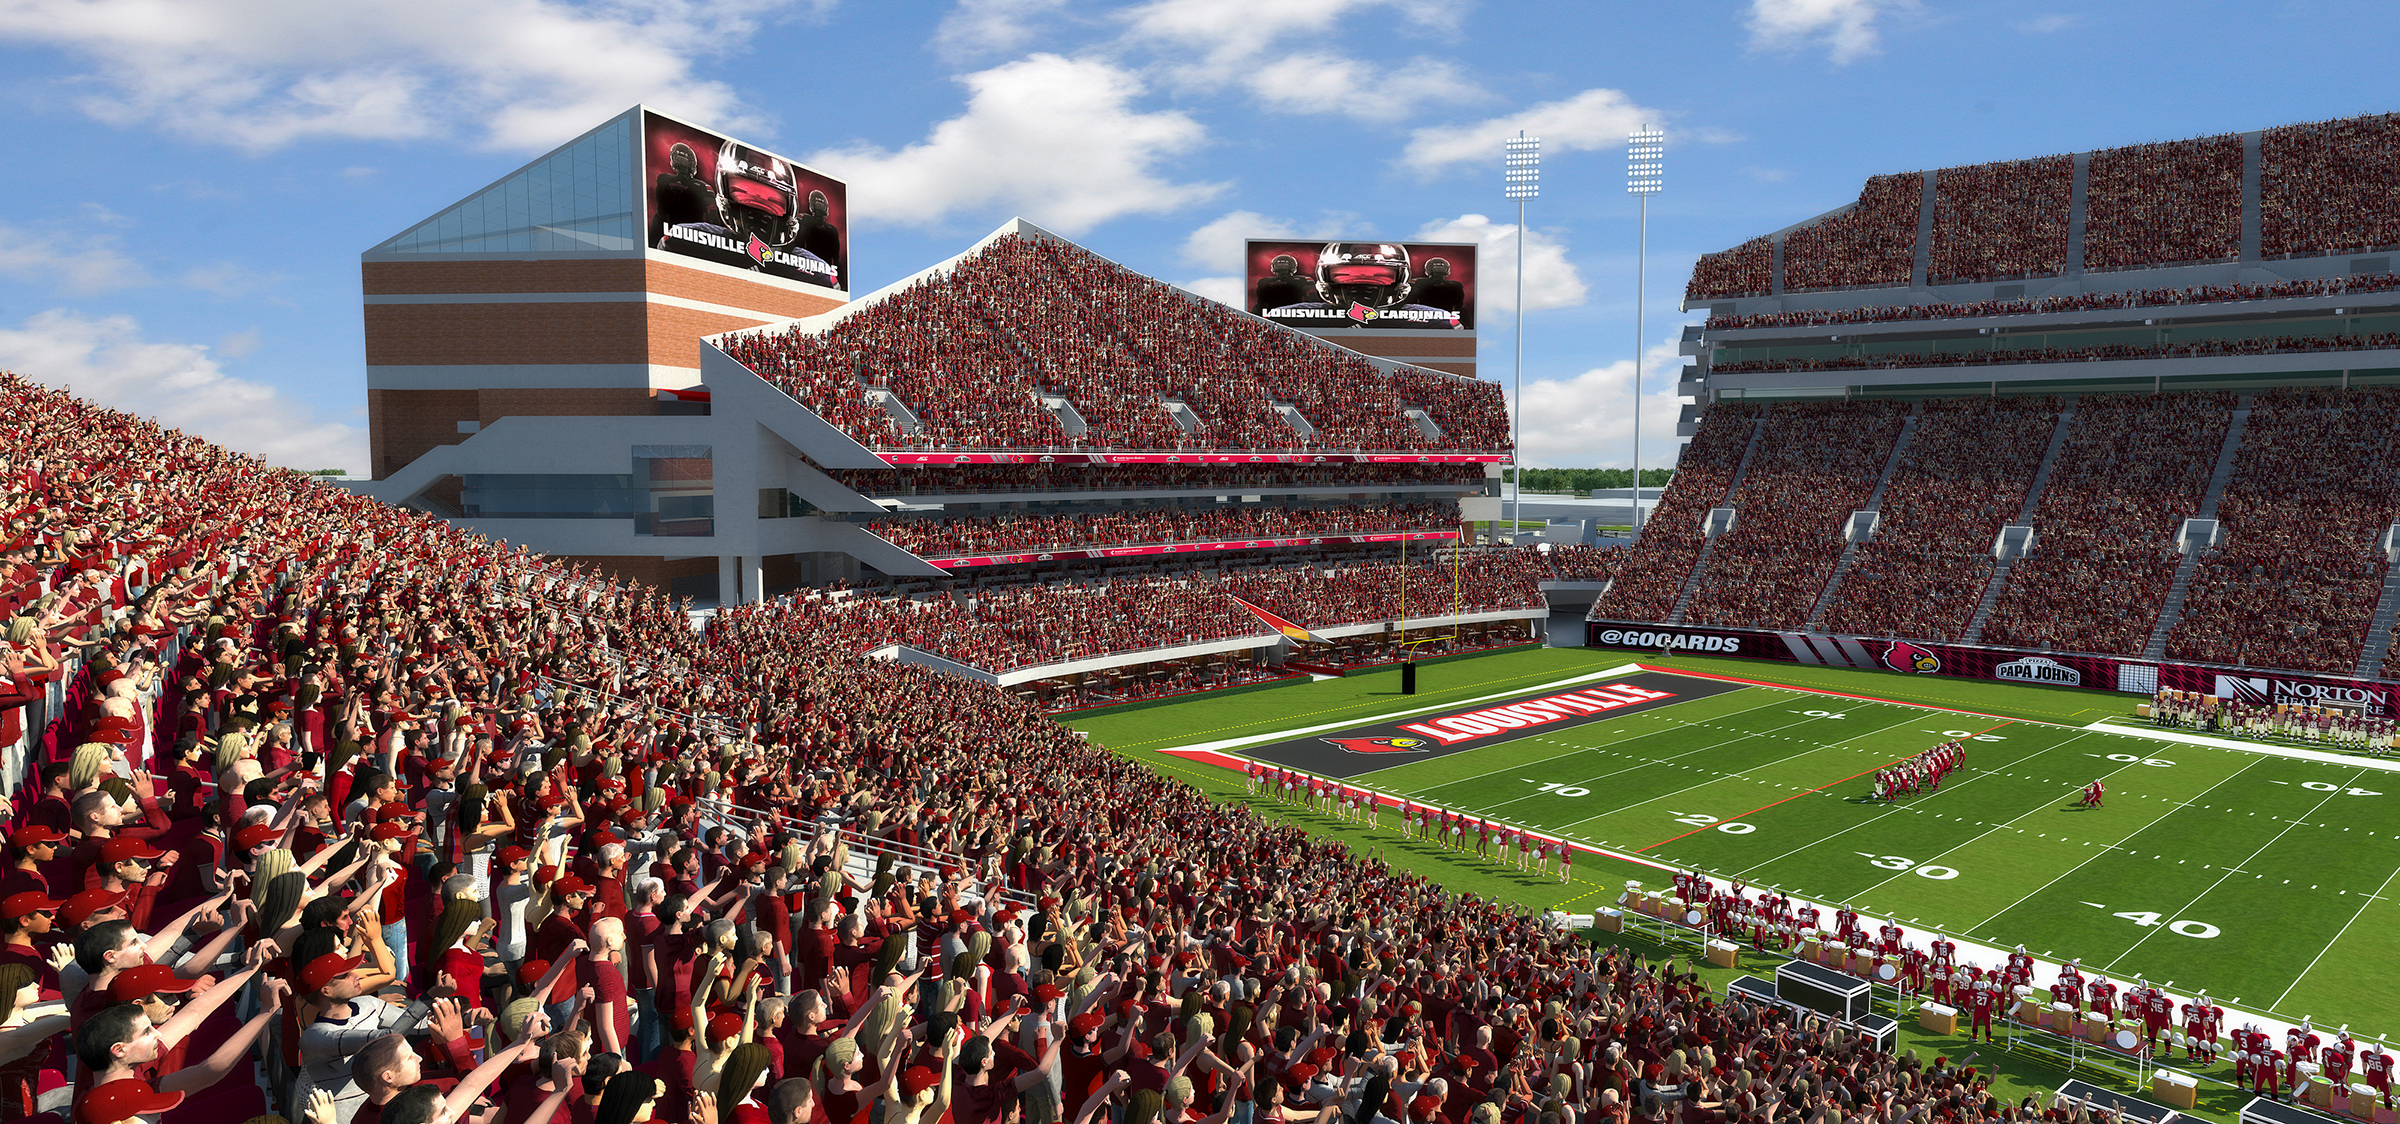 PJCS Endzone Expansion Inside View of Bowl